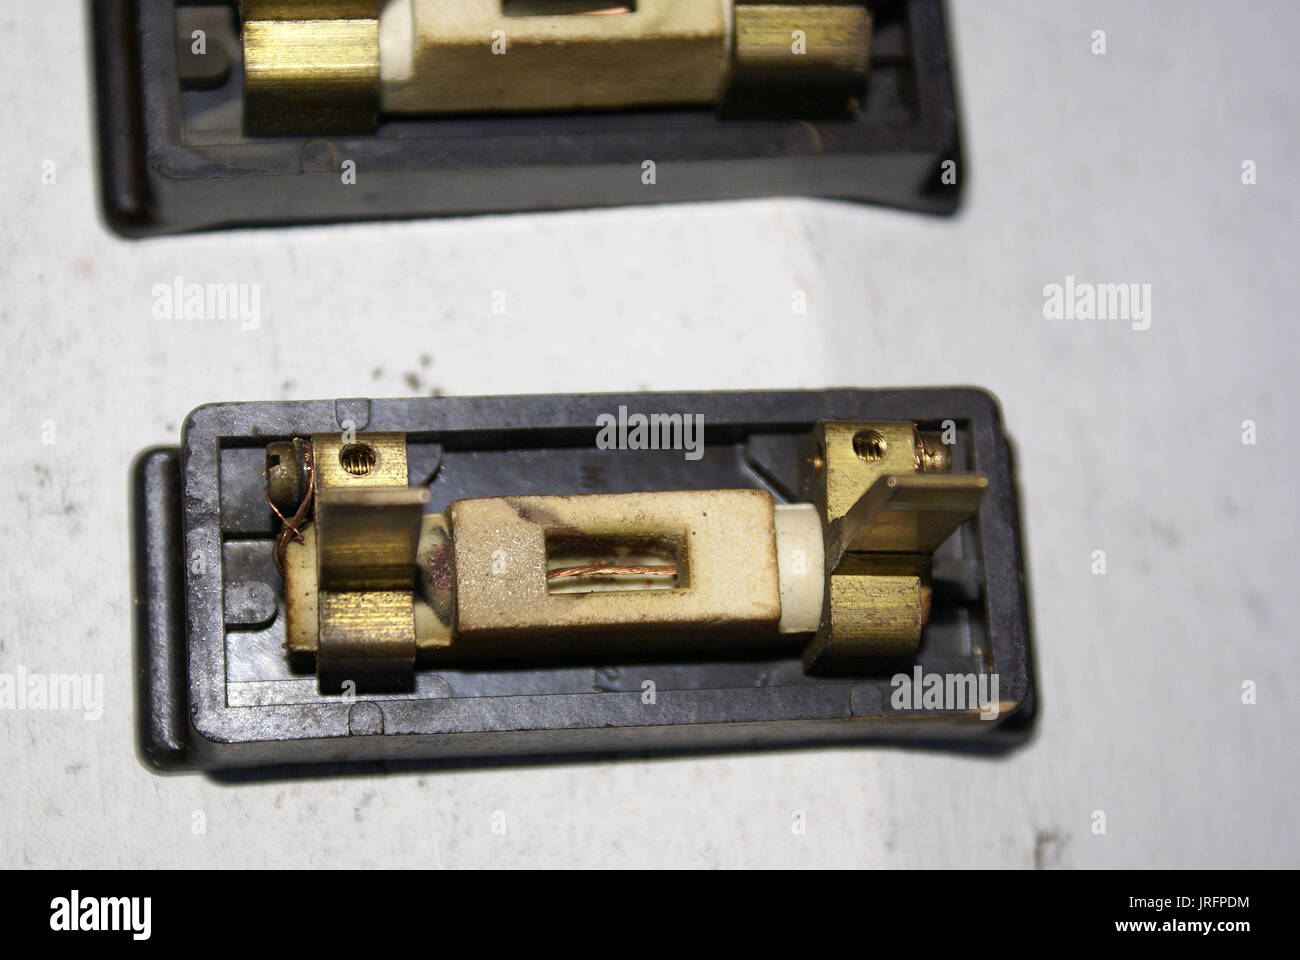 Domestic Fuse Box Stock Photos Images Alamy Home Electrical Cover Image